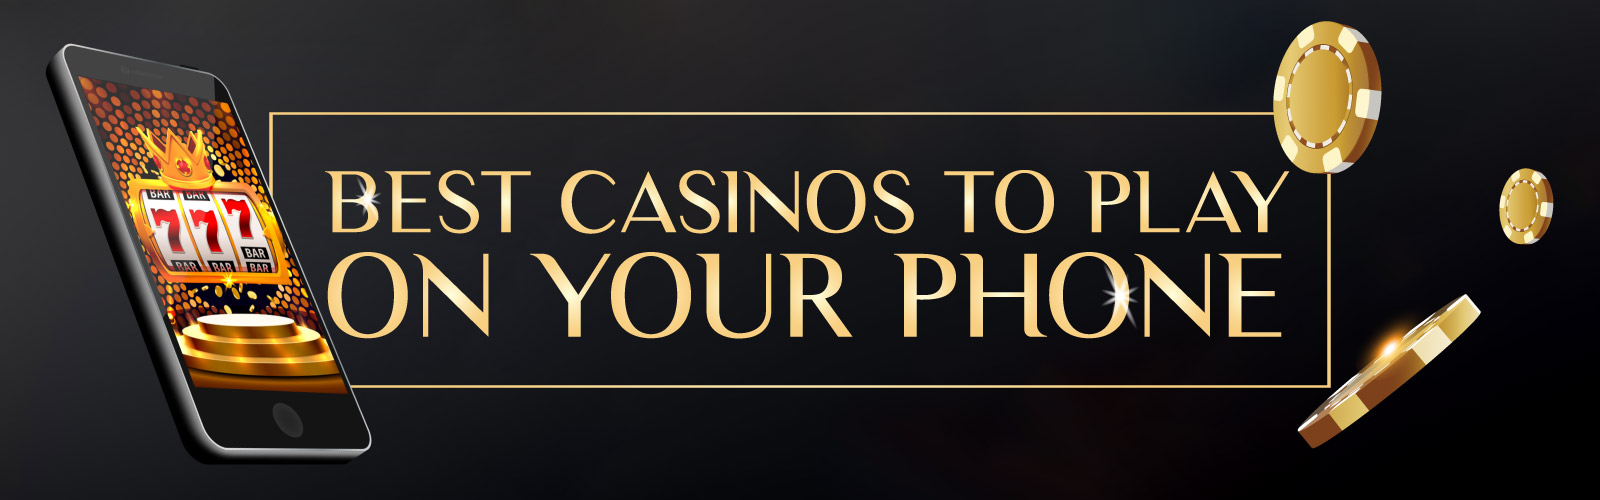 Legit Mobile Casinos Of 2020 - Play And Win On Your Phone! Legitimatecasino.com